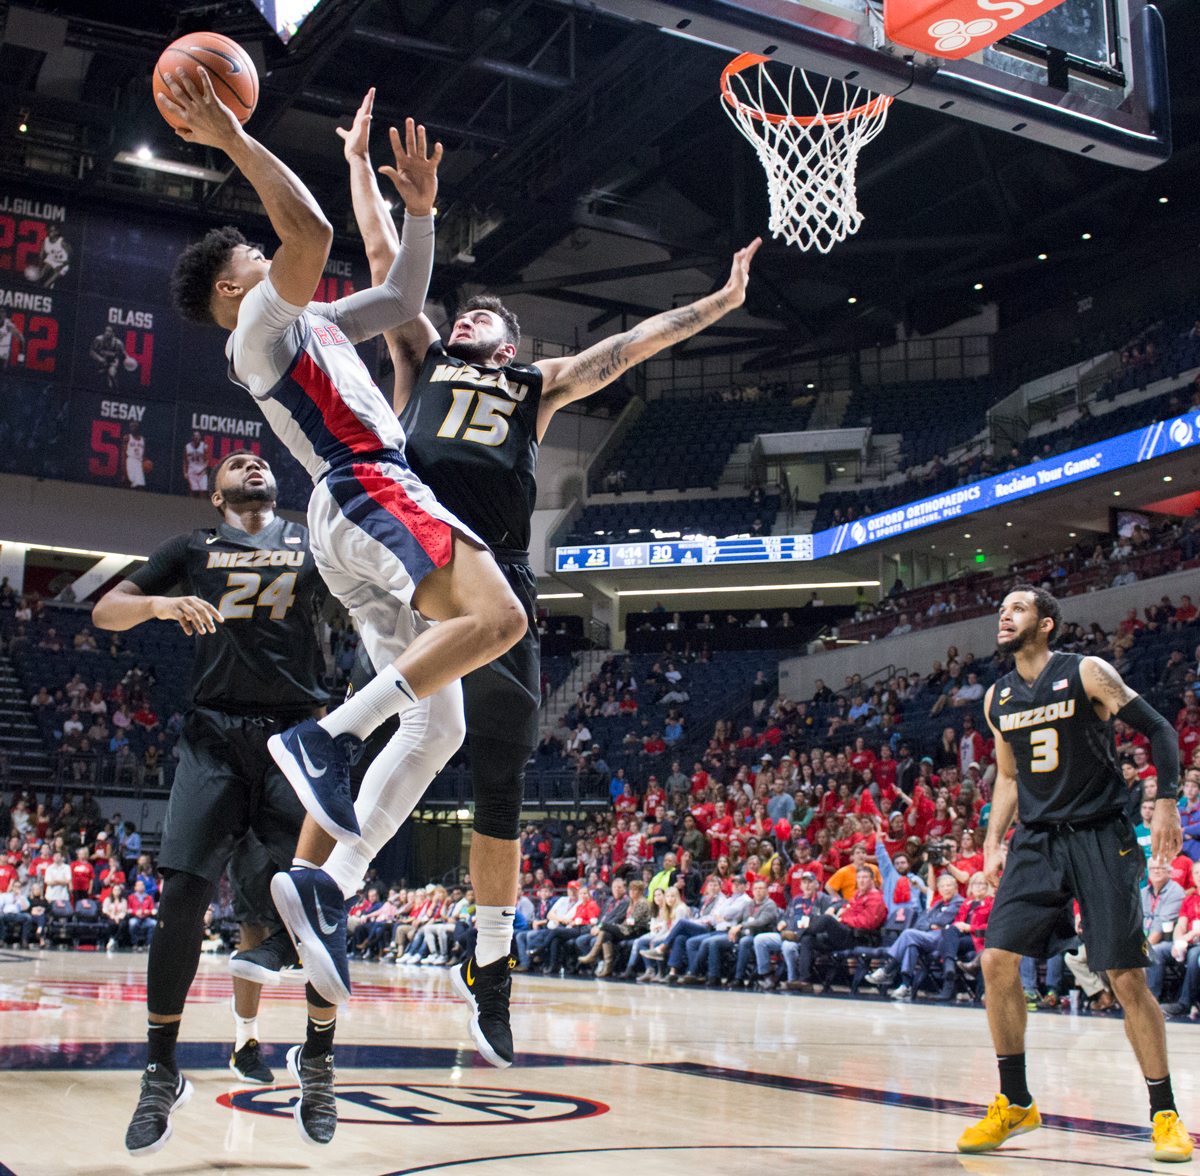 Ole Miss men's basketball heads to Baton Rouge for SEC showdown